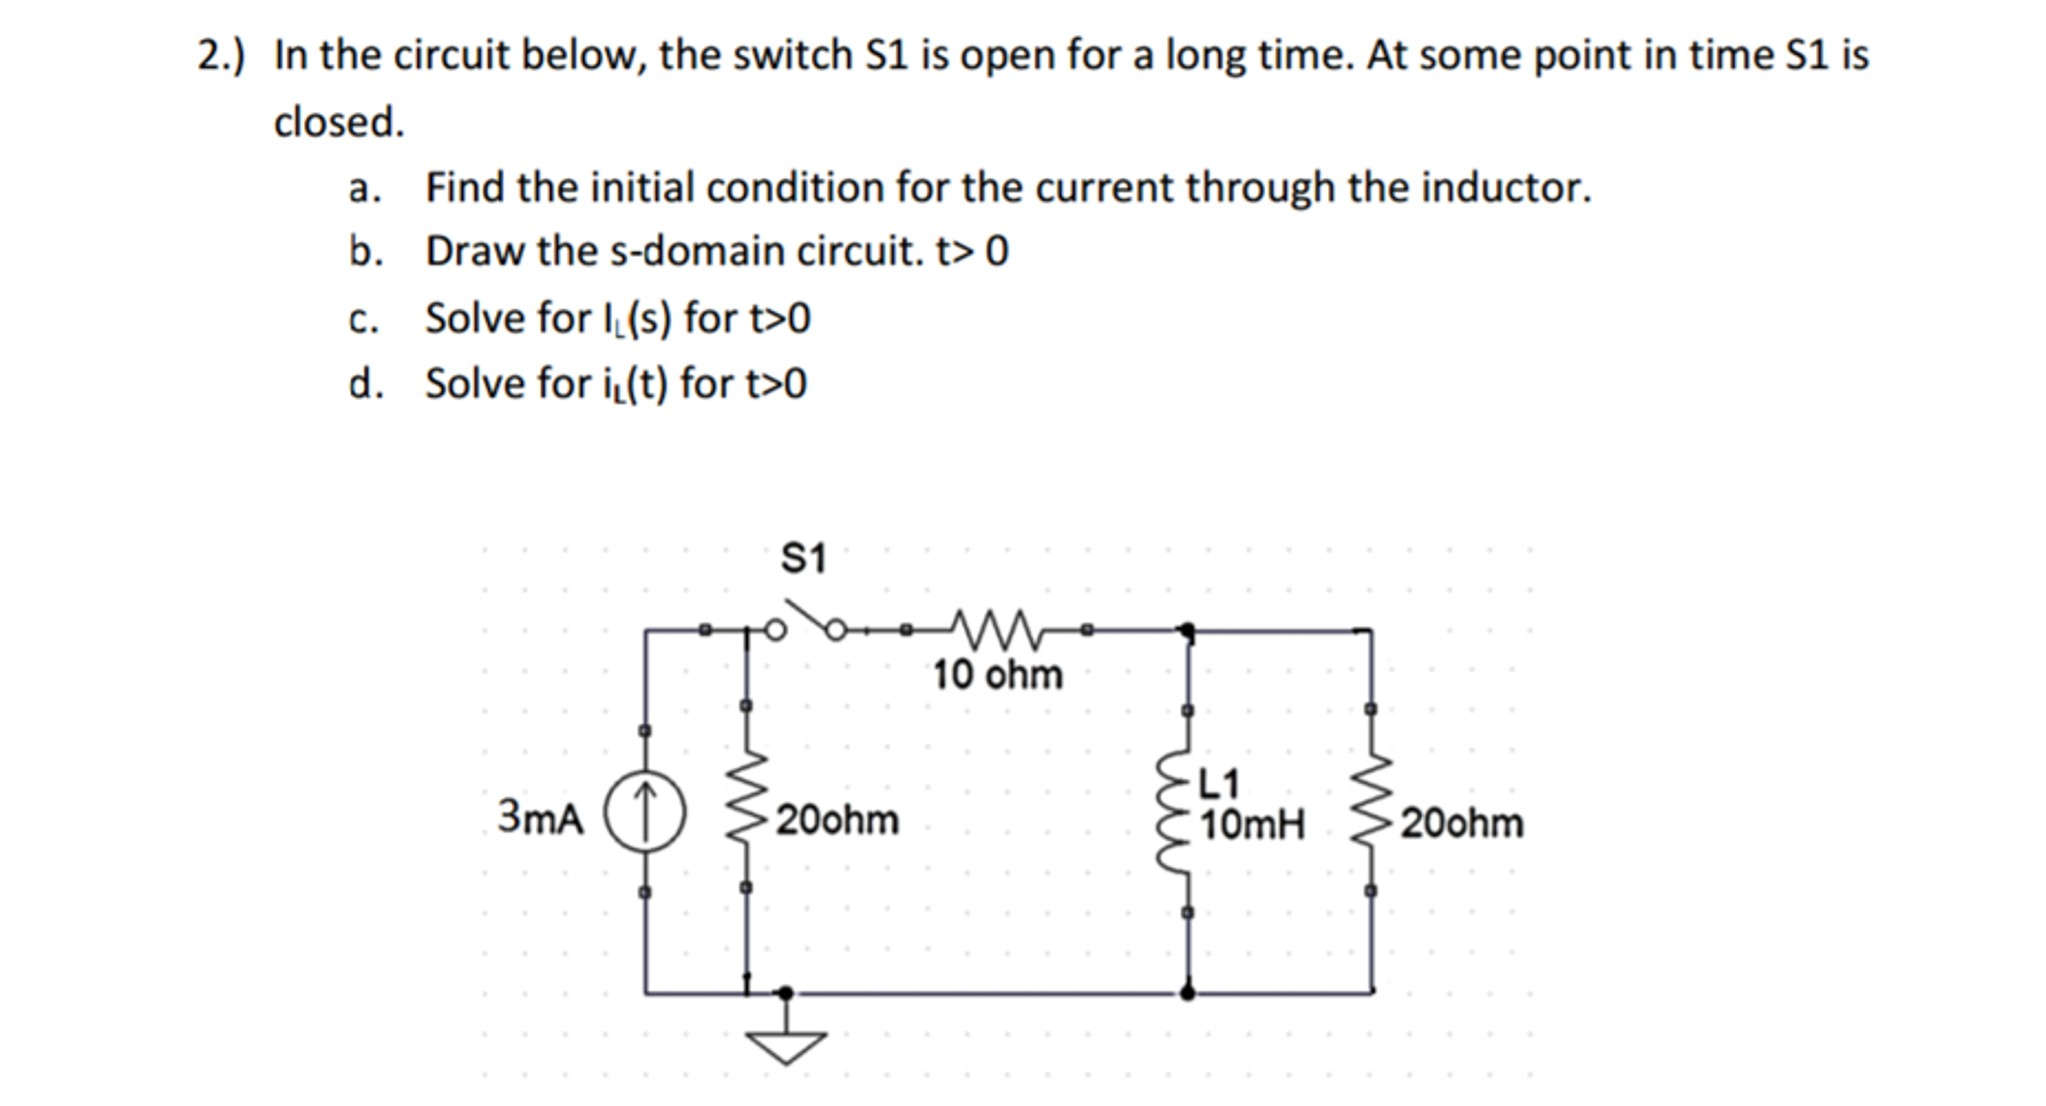 Wiring Diagram Switch S1 solved 2 In the Circuit Below the Switch S1 is Open Fo Of Wiring Diagram Switch S1